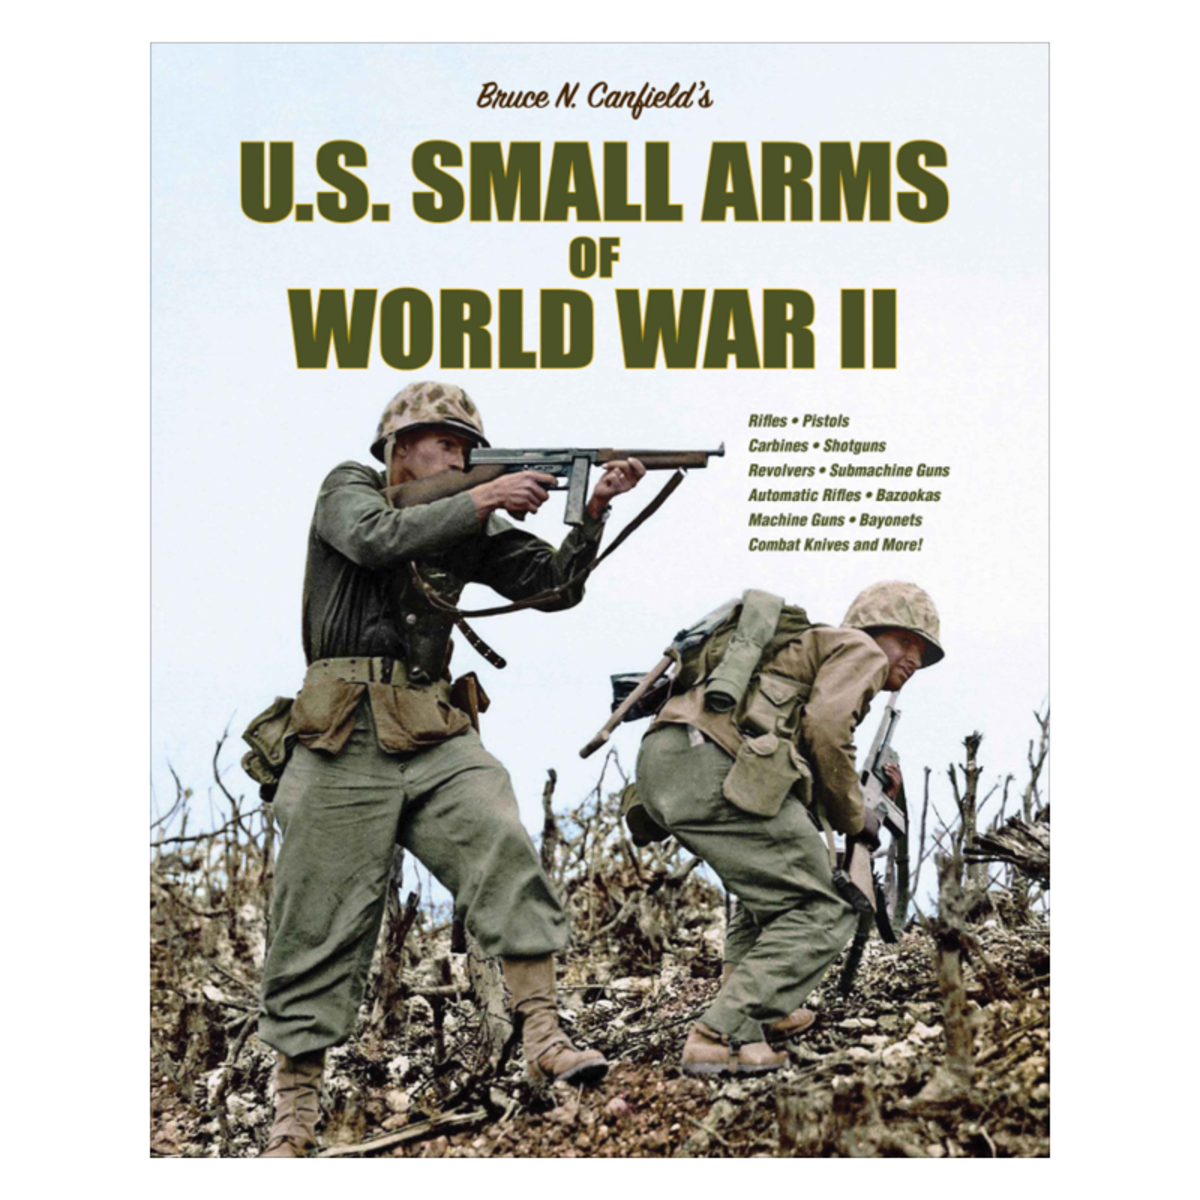 U.S. Small Arms of World War II, by Bruce N. Canfield published at $95.